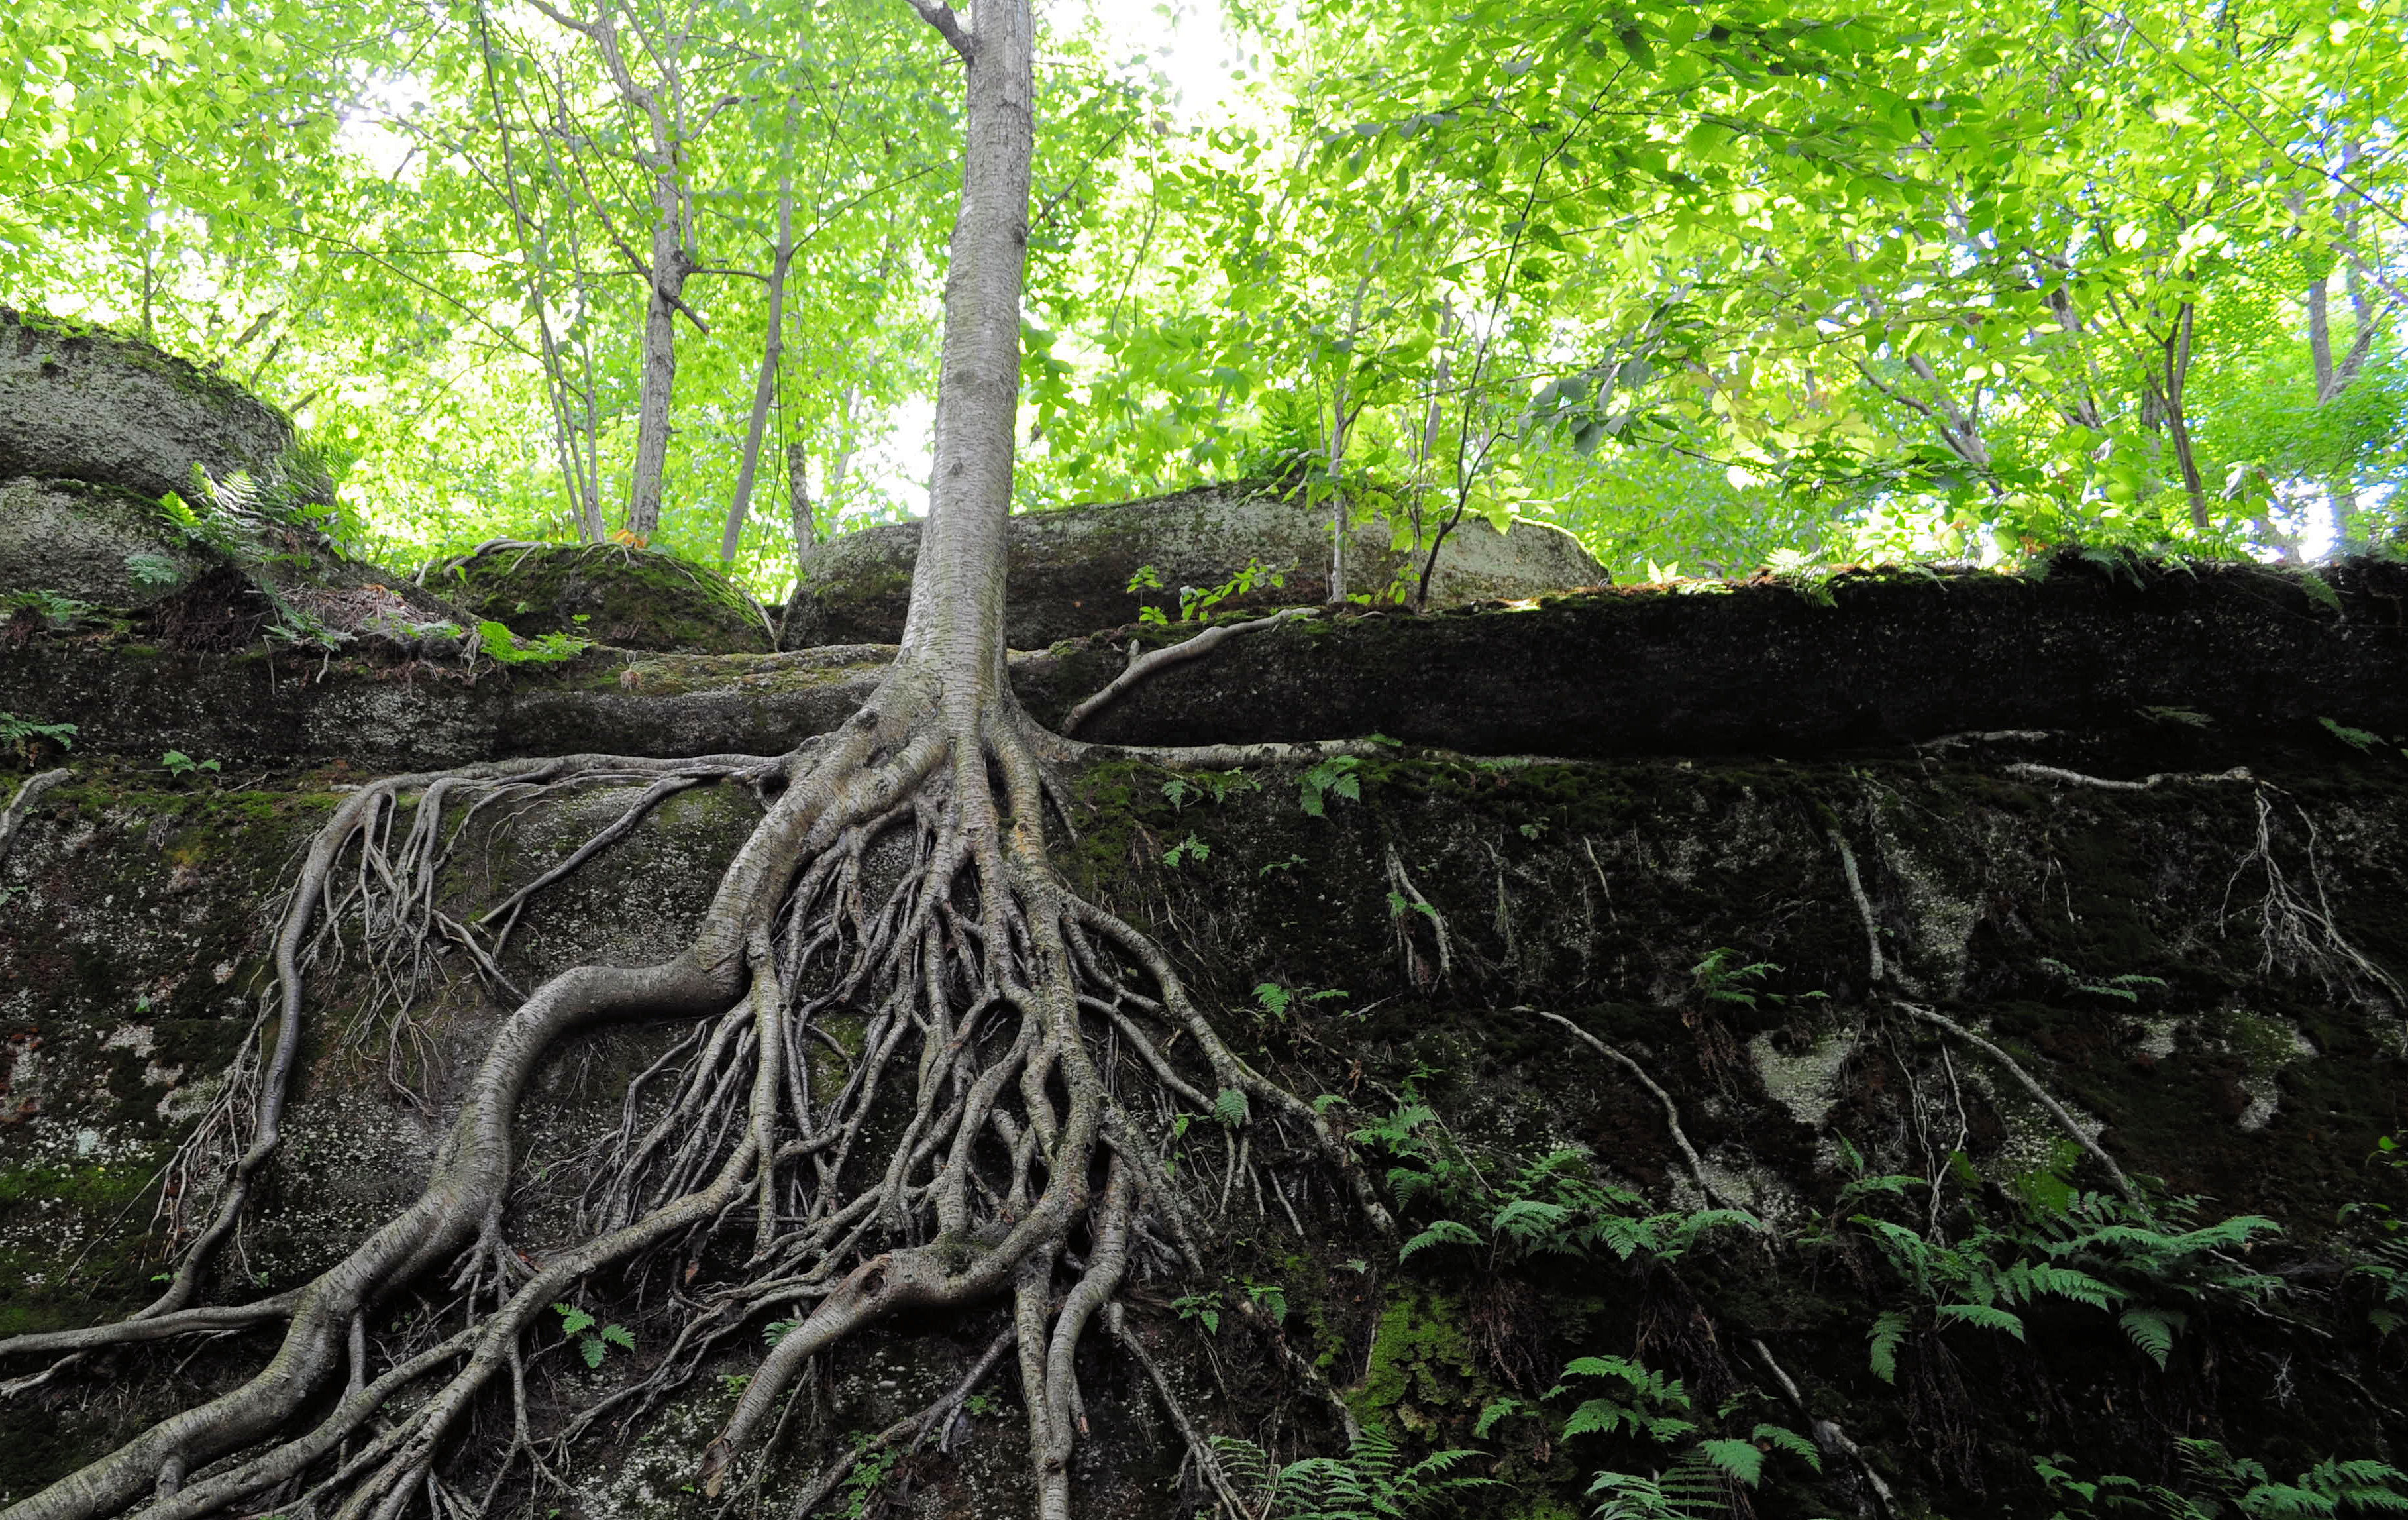 How To Cover Exposed Tree Roots